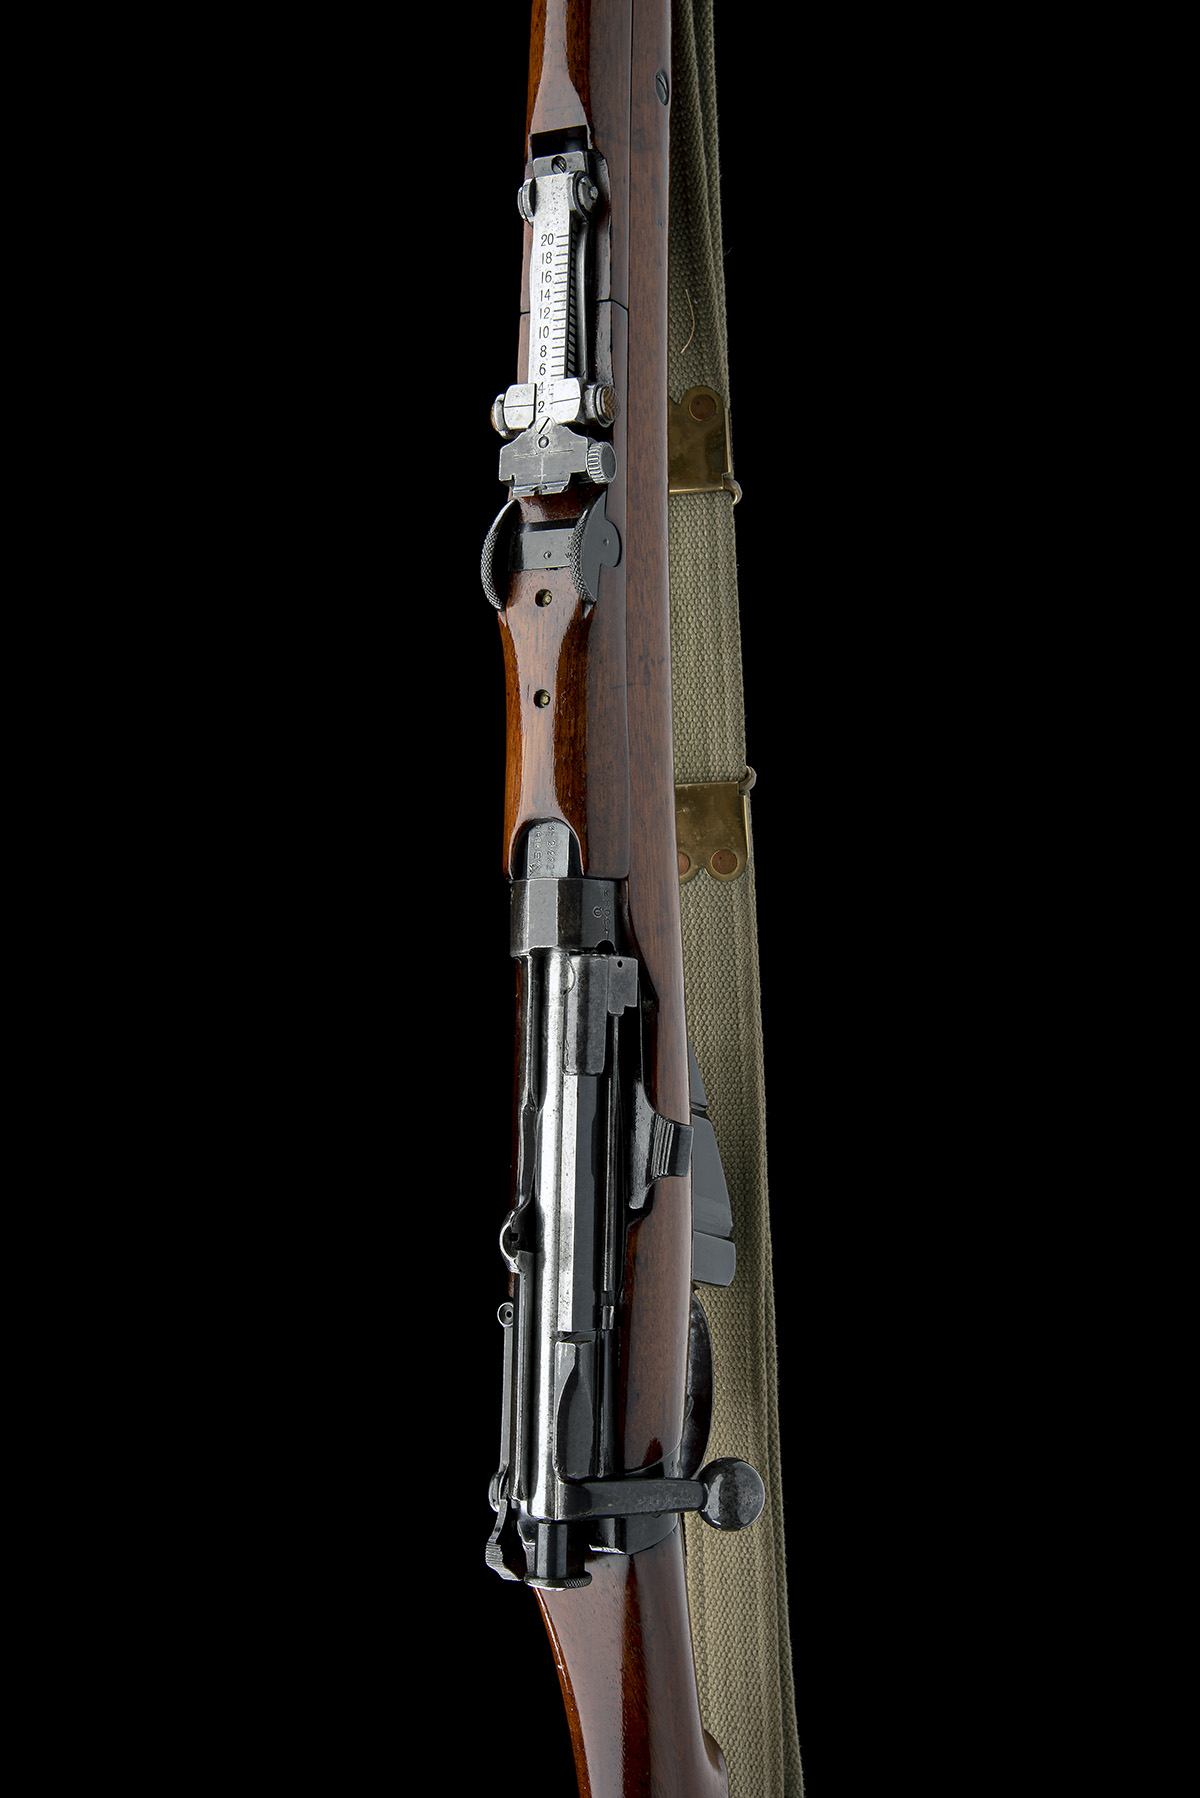 B.S.A. CO. SPARKBROOK A RARE .303 BOLT-ACTION REPEATING SERVICE-RIFLE, MODEL 'SHT L.E. MK 1*', - Image 4 of 11